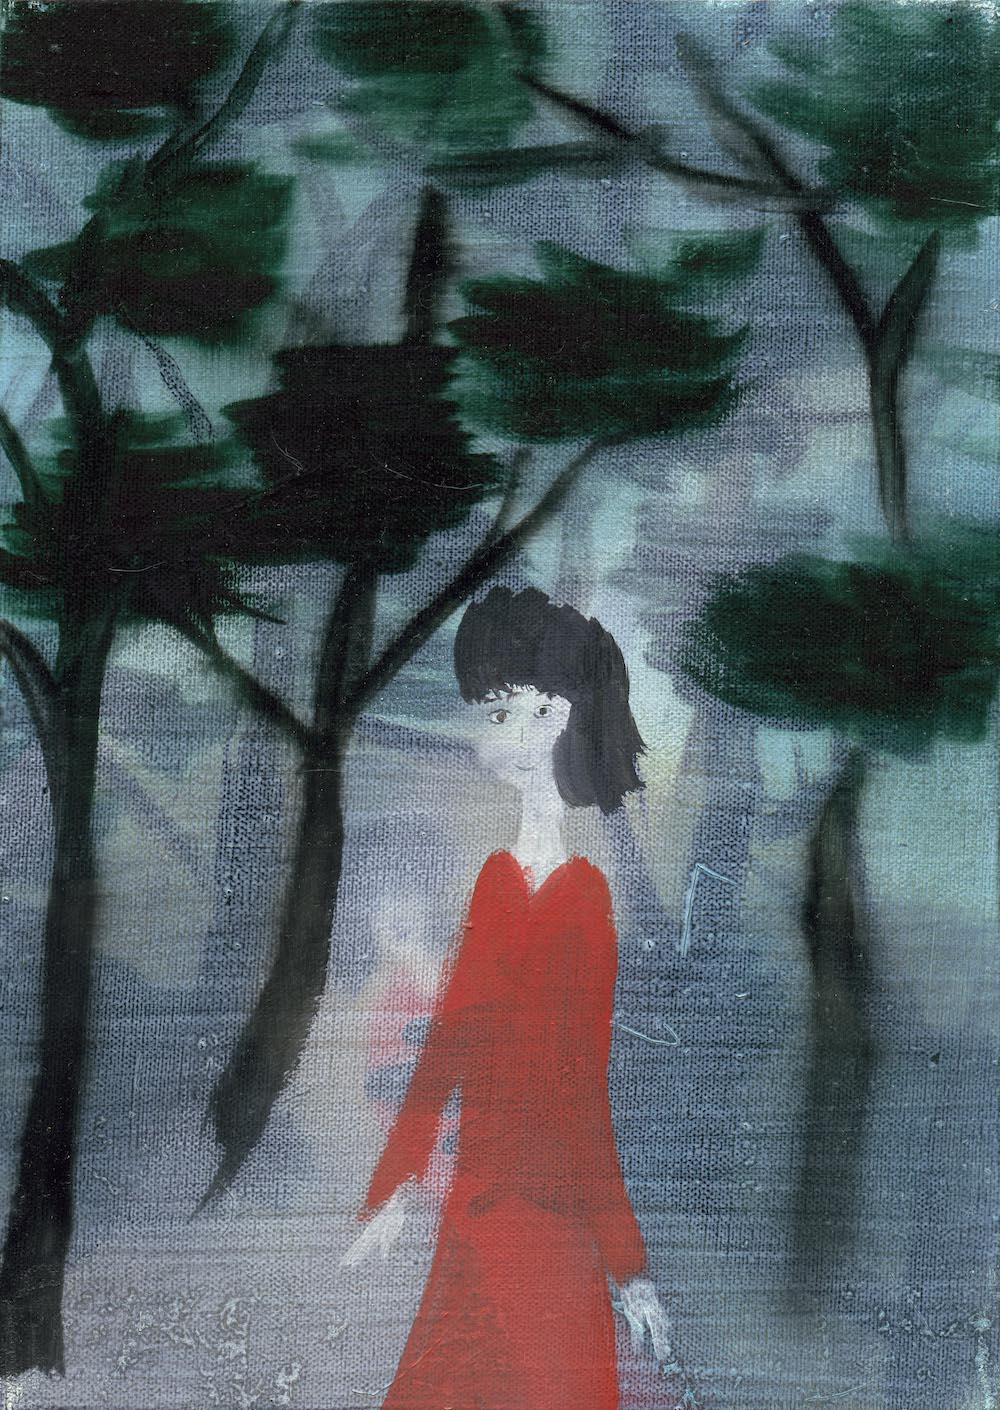 西村有, A Girl in the Pinery, 2018